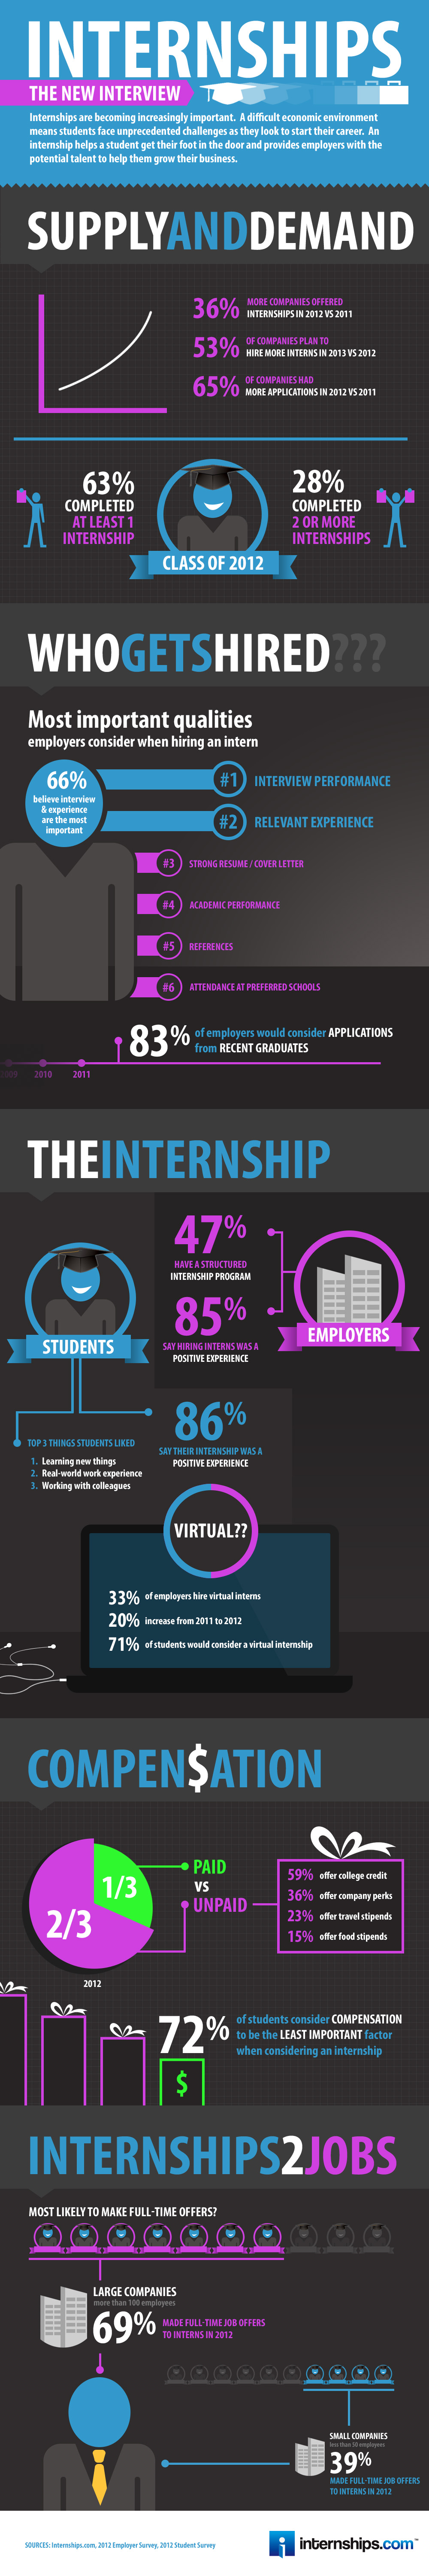 Internships.com Infographic - Internships: The New Interview